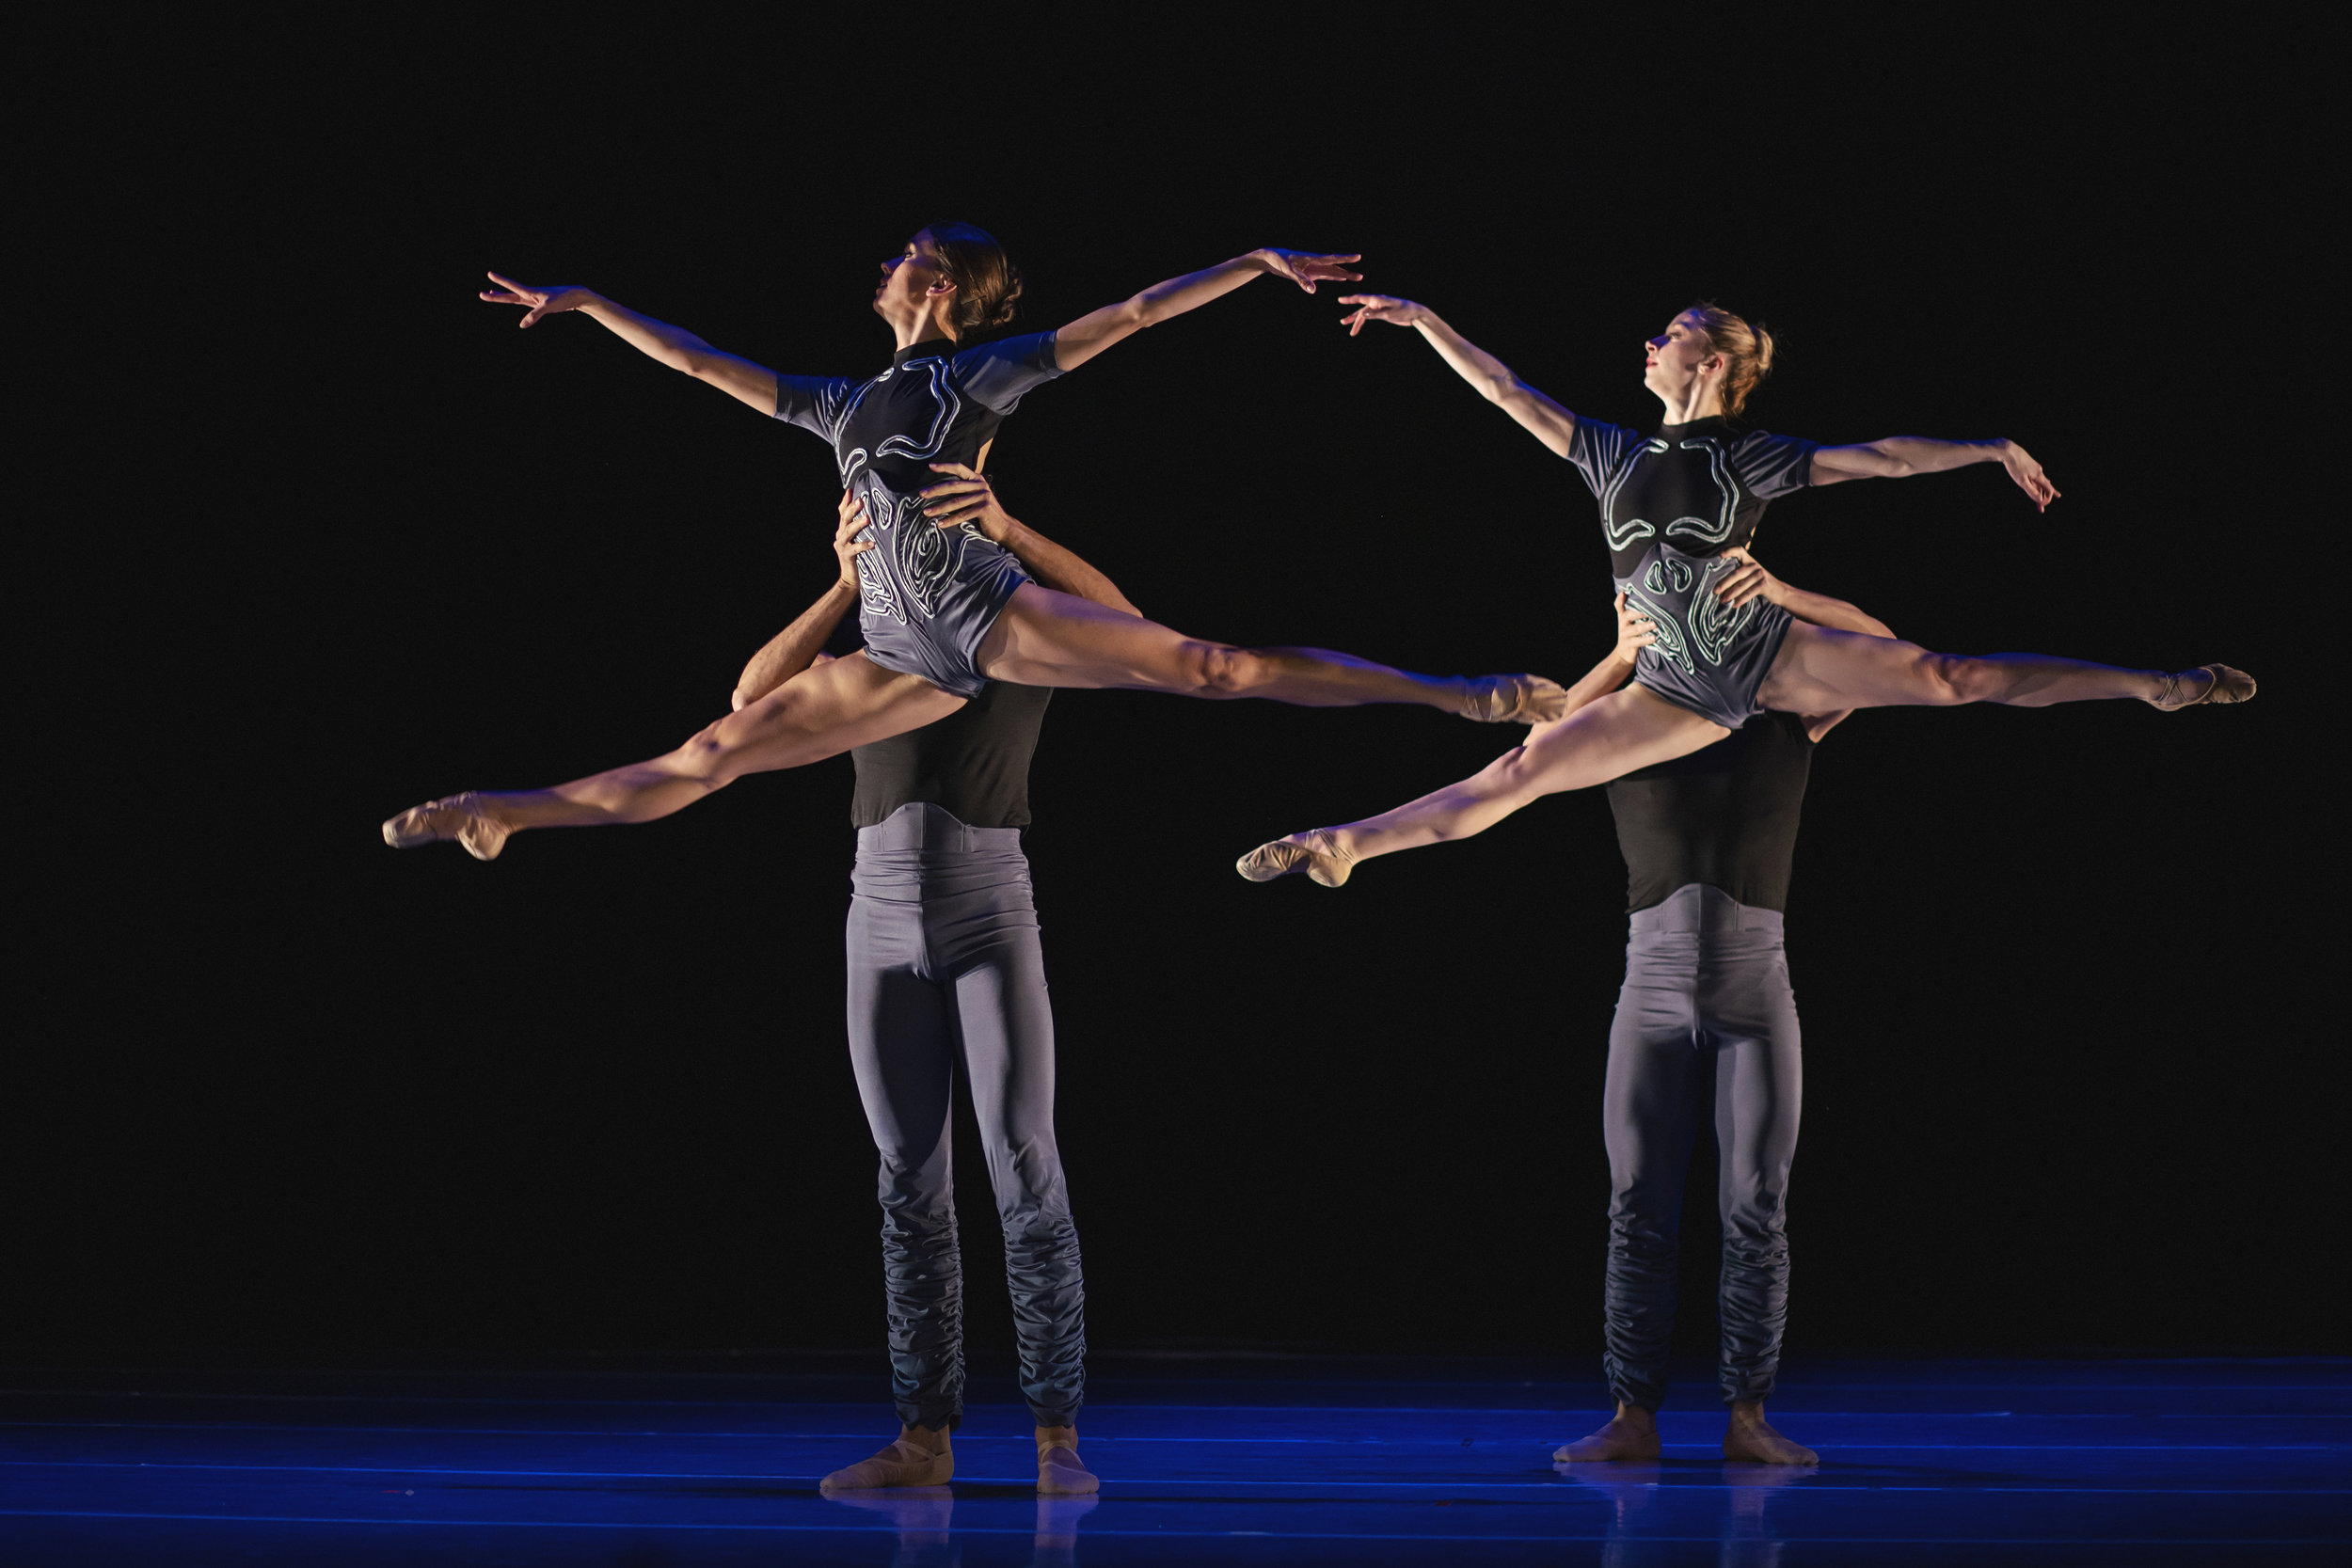 Wonderbound-dancers-in-Artistic-Director-Garrett-Ammon_s_With-Your-Help_in_Cupid_s-Playground-with-the-Colorado-Symphony_photo-by-Amanda-Tipton_20199.jpg